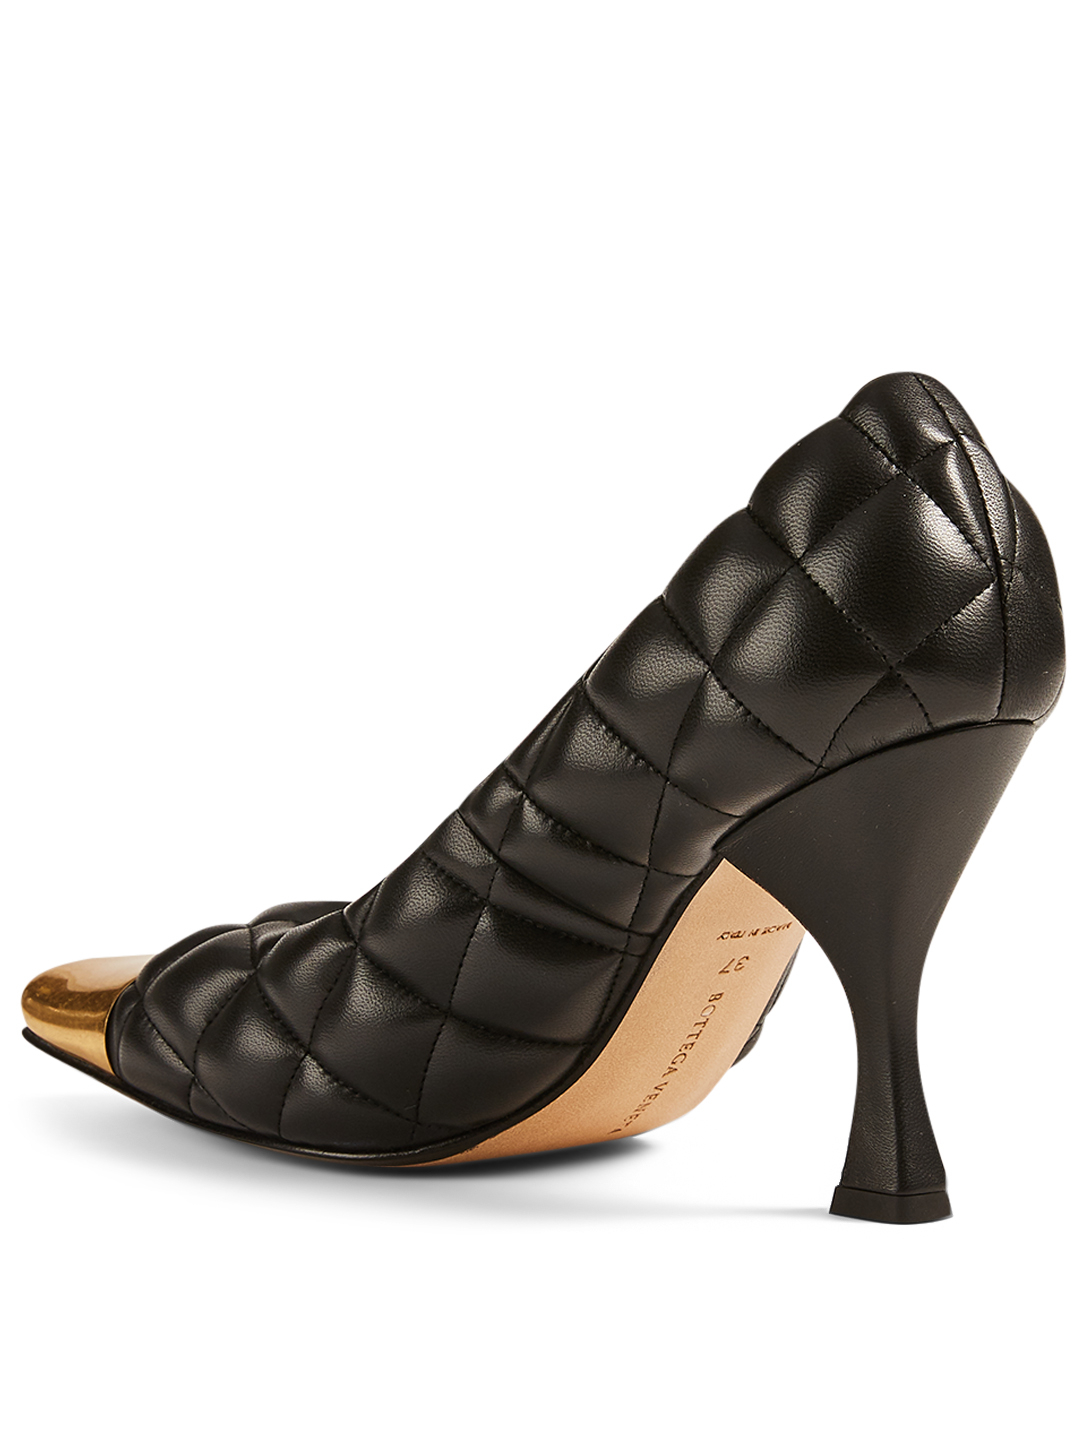 BOTTEGA VENETA Quilted Leather Pumps With Metal Toe Cap Women's Black